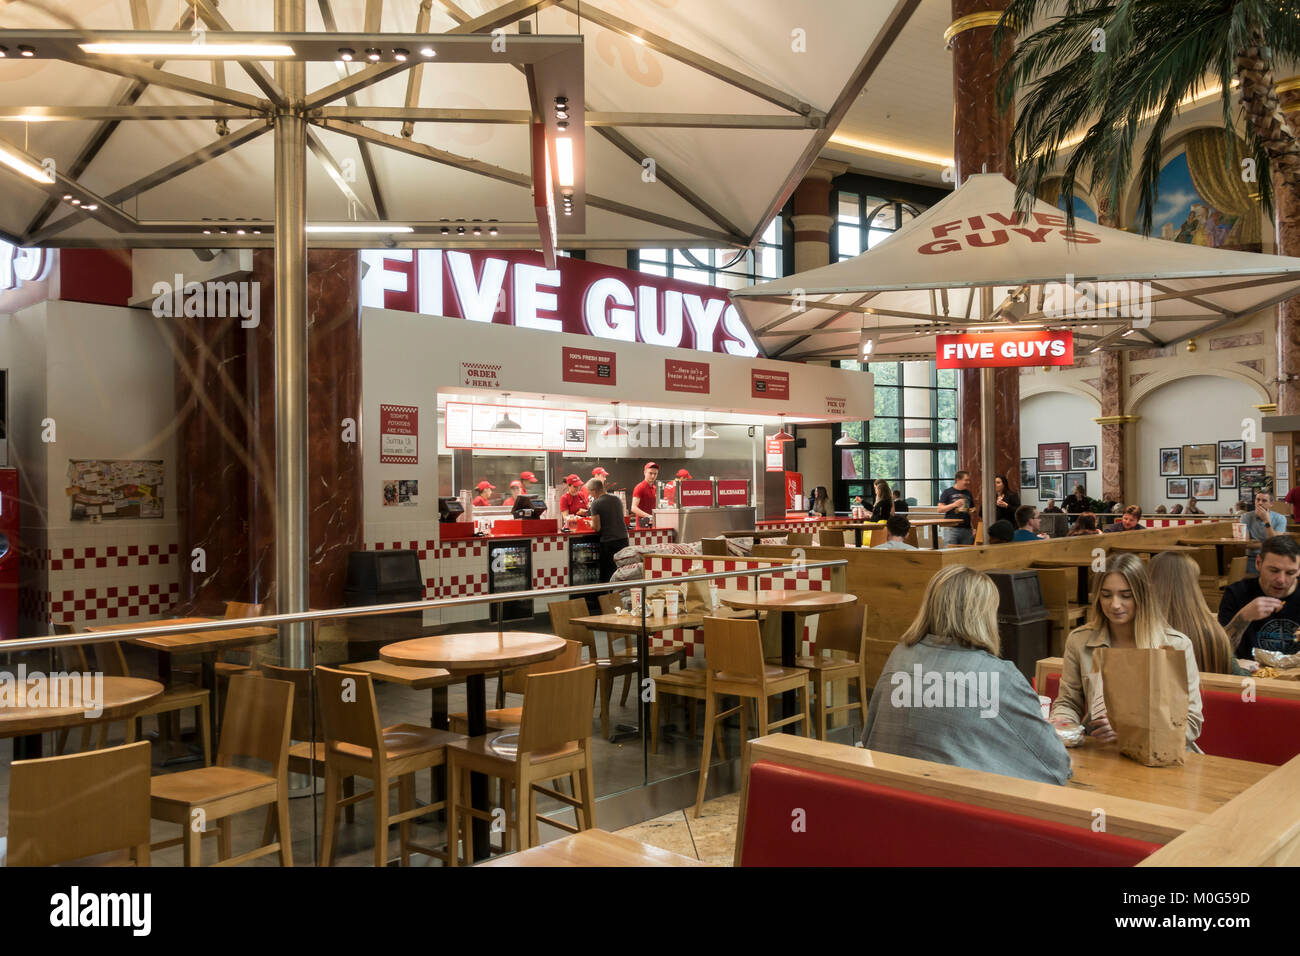 Five Guys fast food outlet in the Orient Food Court, intu Trafford Centre, Manchester, England. - Stock Image